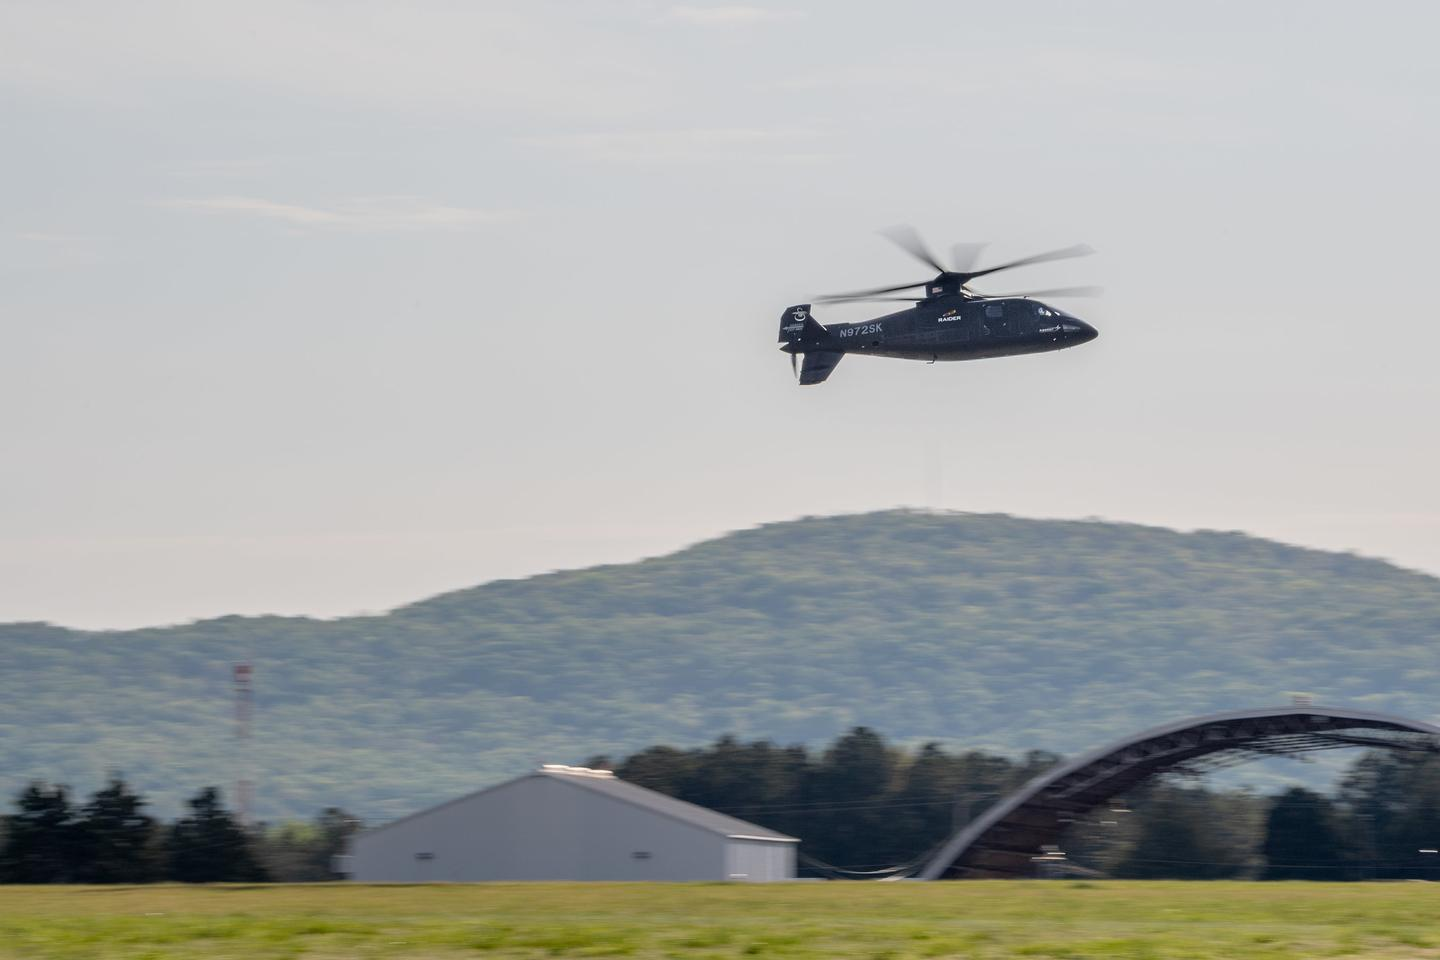 The Sikorsky S-97 RAIDER helicopter flew two flight demonstrations